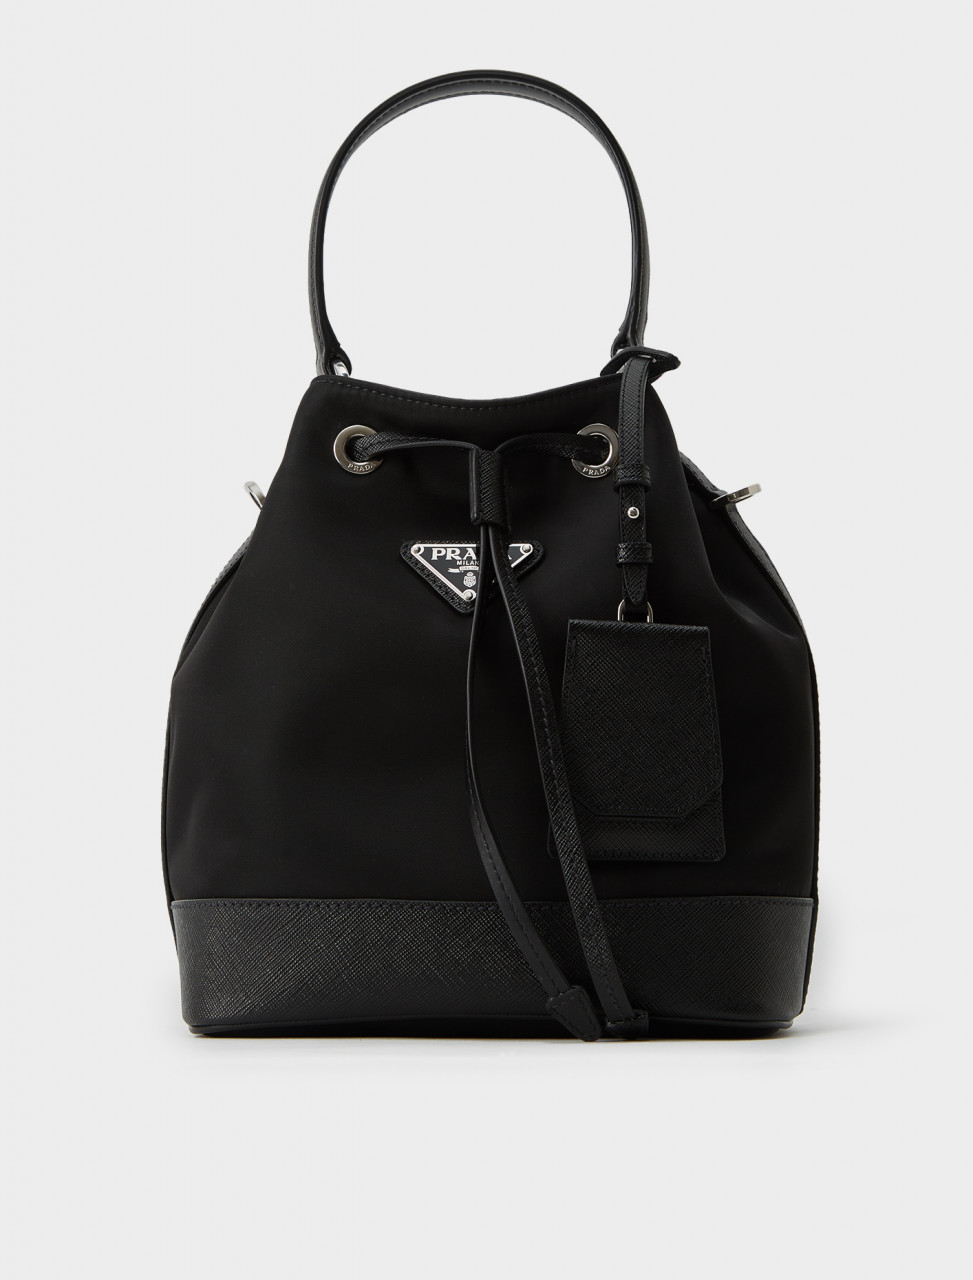 1BE055-064-F0002 Prada Nylon Bucket Bag with Leather Trim in Black